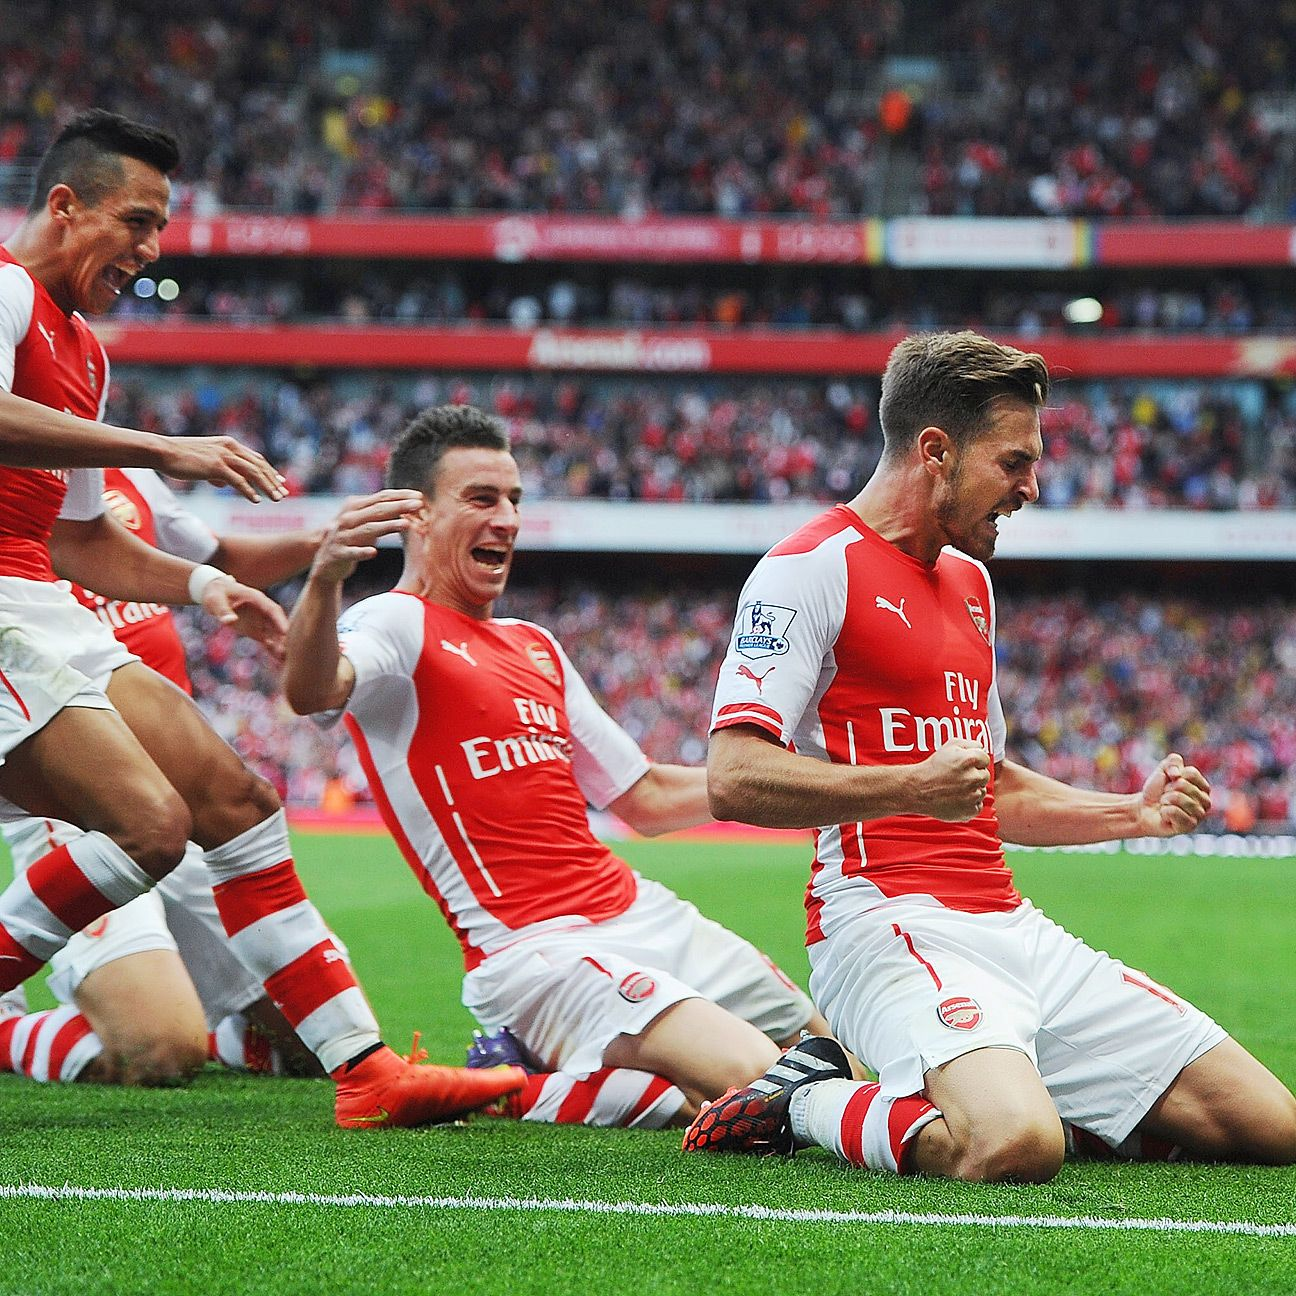 In what's becoming a regular occurrence, Aaron Ramsey rescued Arsenal.